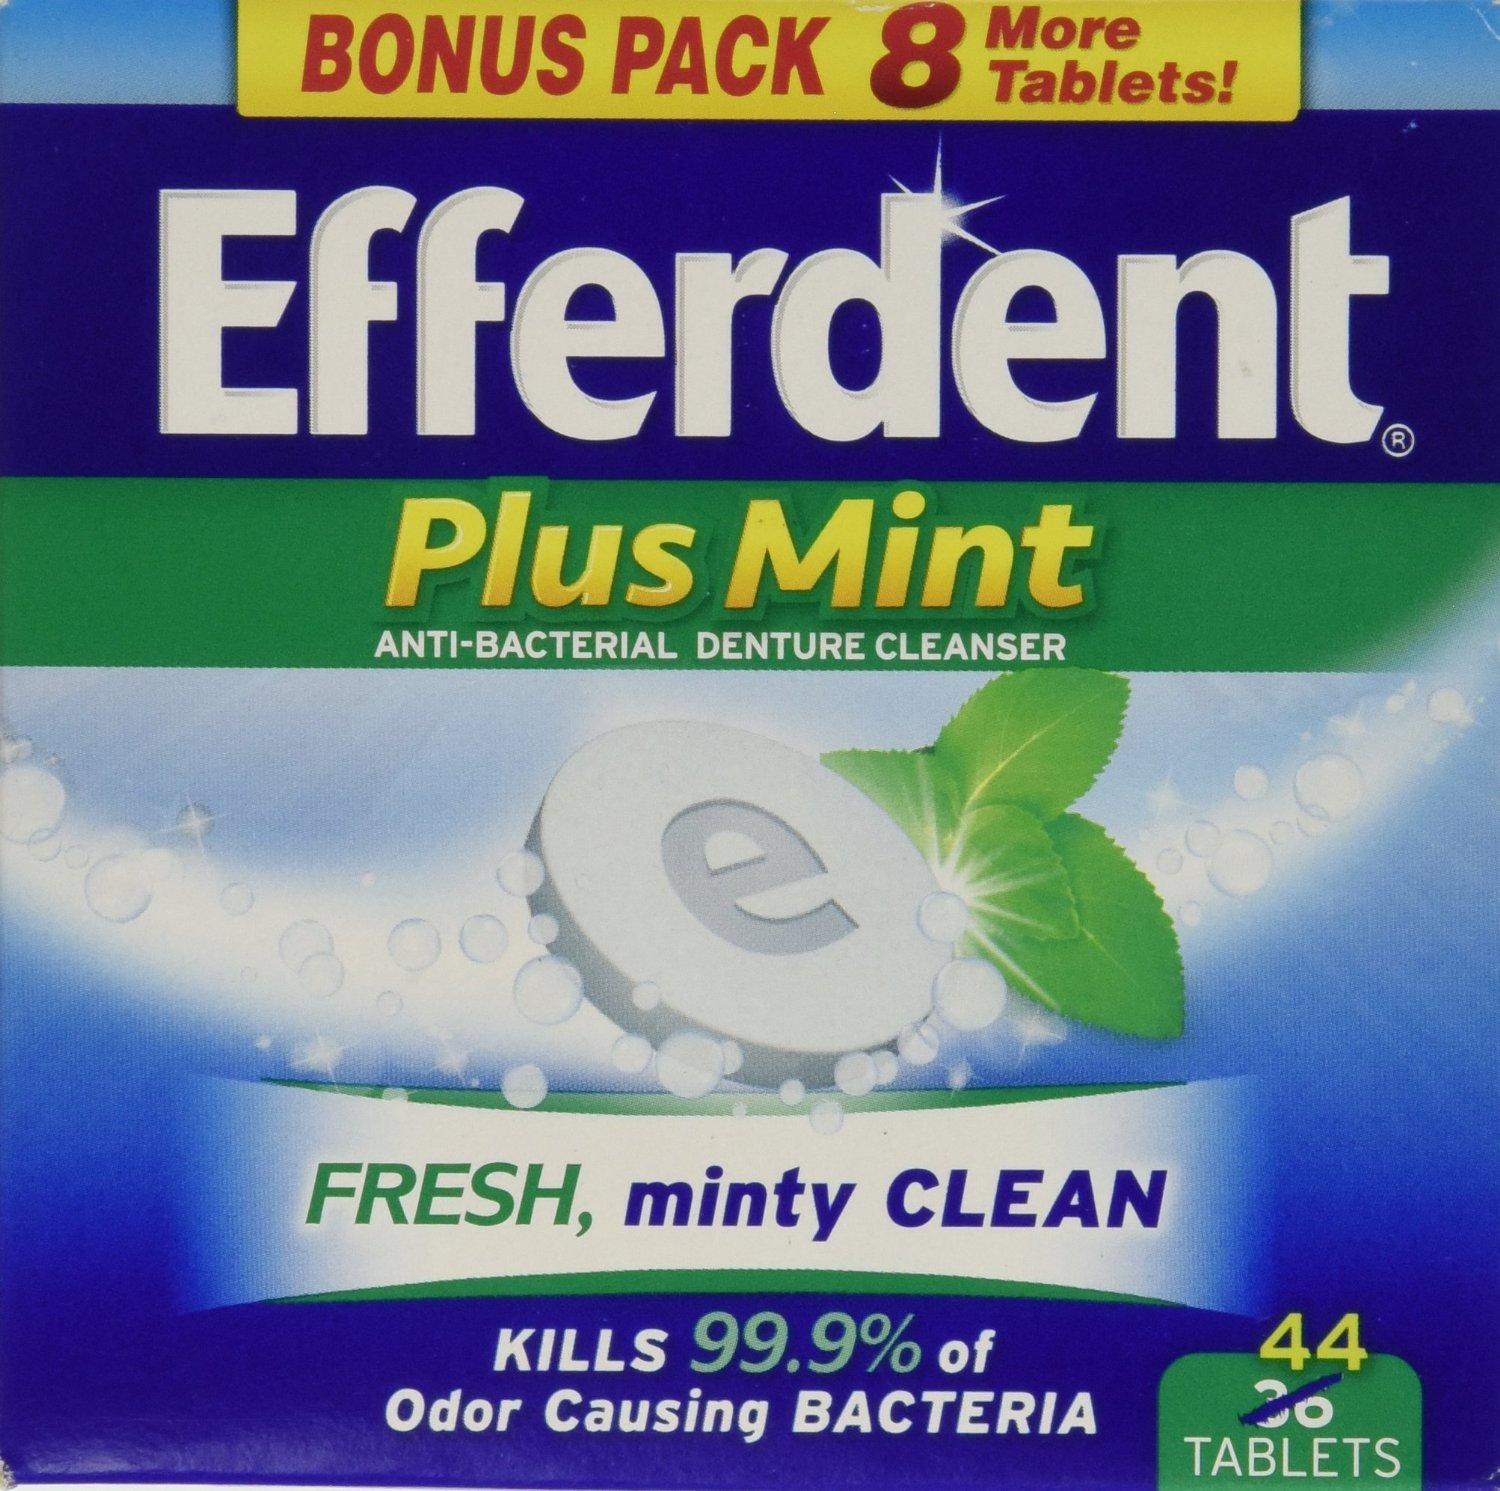 Efferdent Plus Mint Anti-Bacterial Denture Cleanser Tablets, 44 Count (Pack of 6) by Efferdent